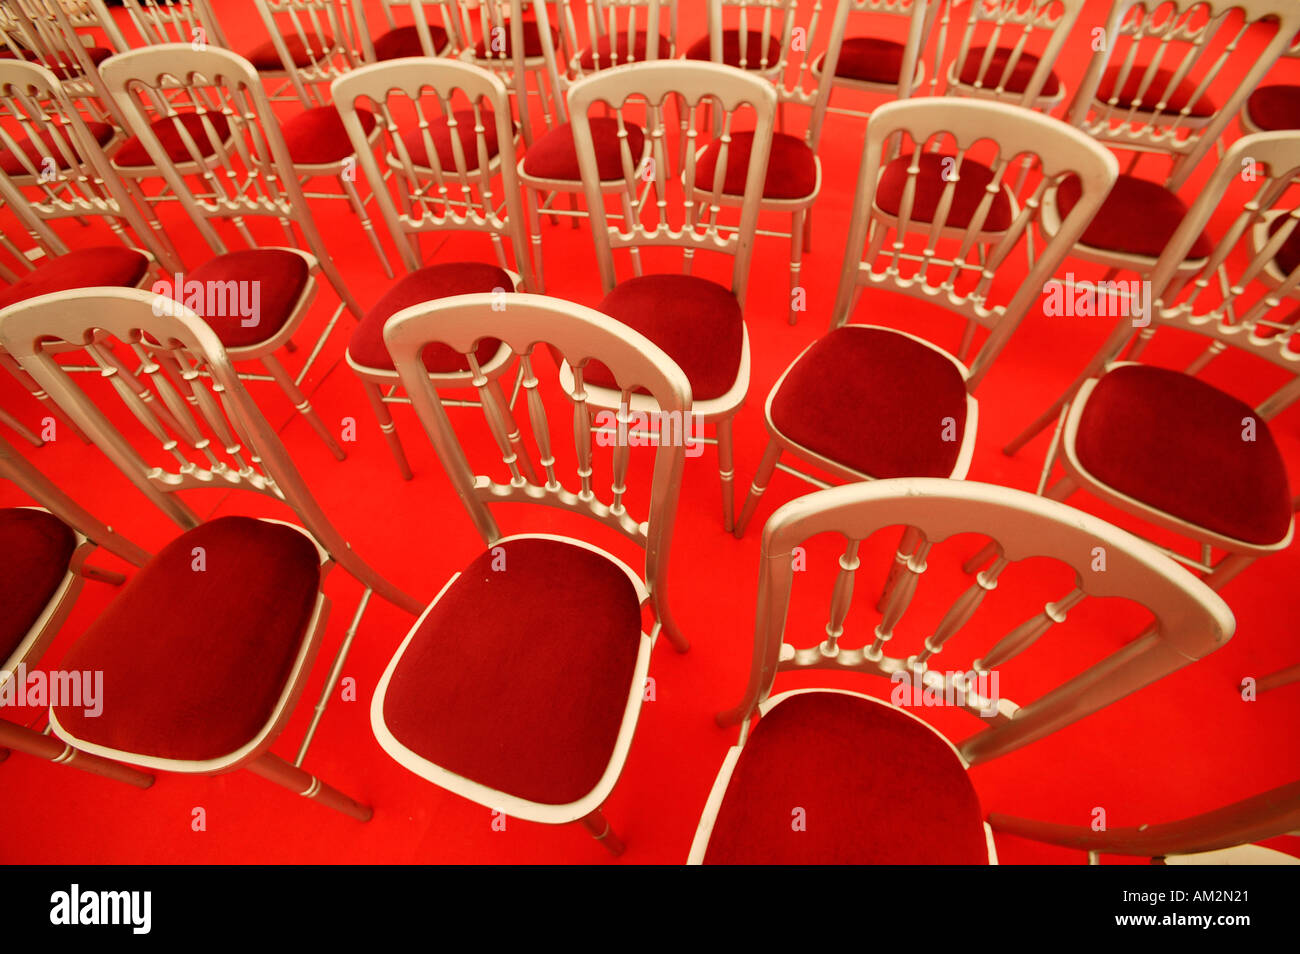 Empty seats - Stock Image